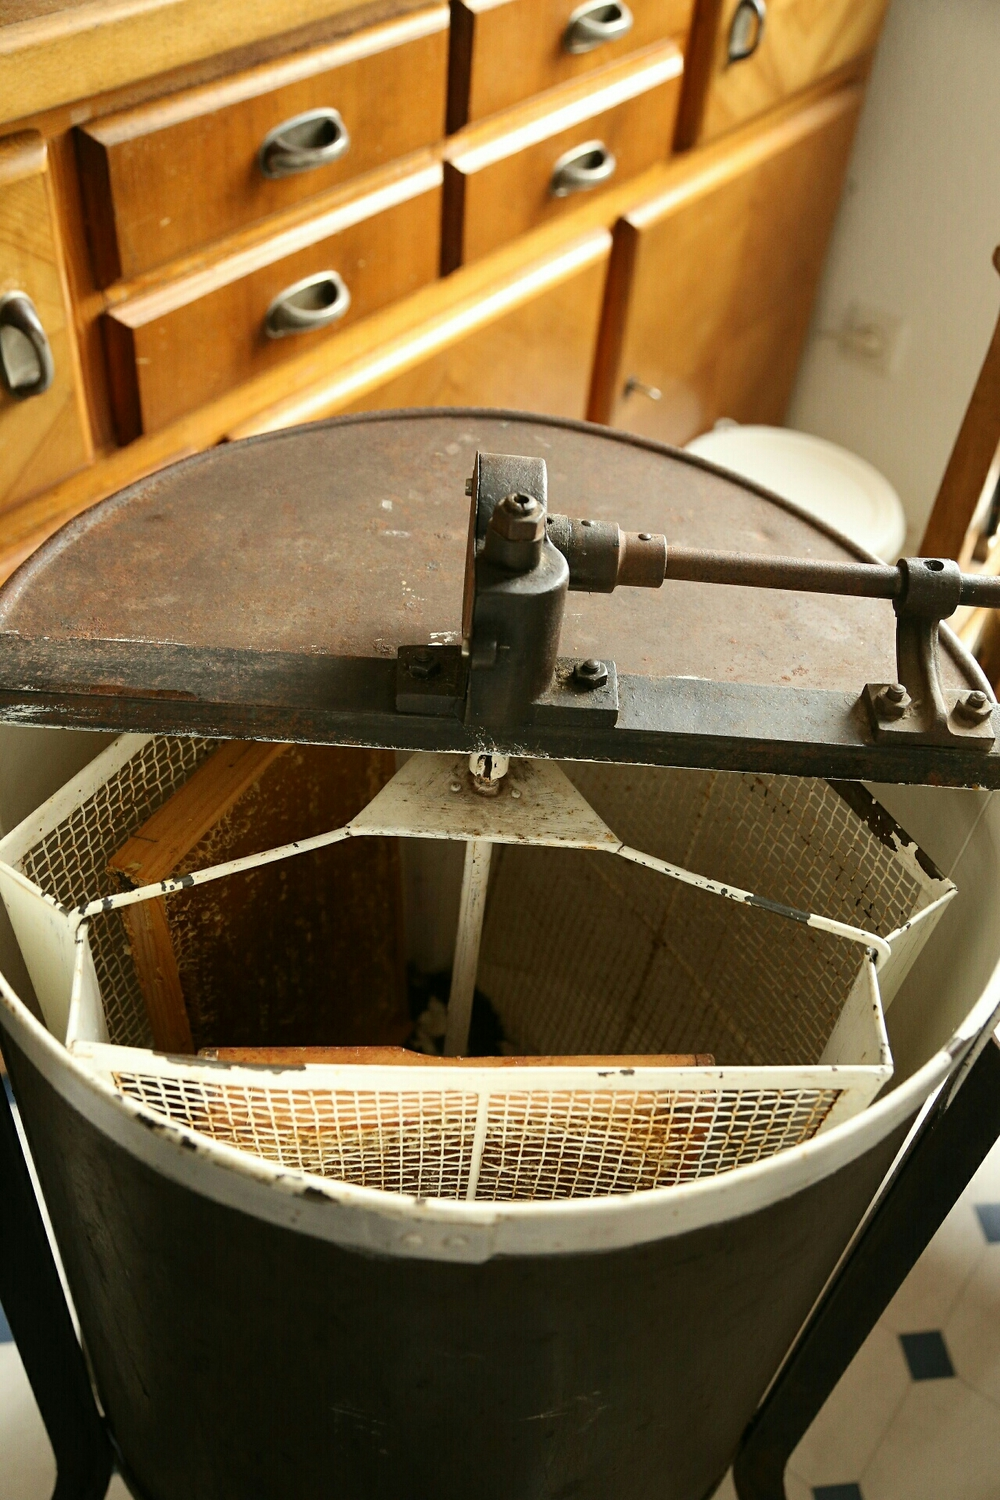 The drum can hold three trays.